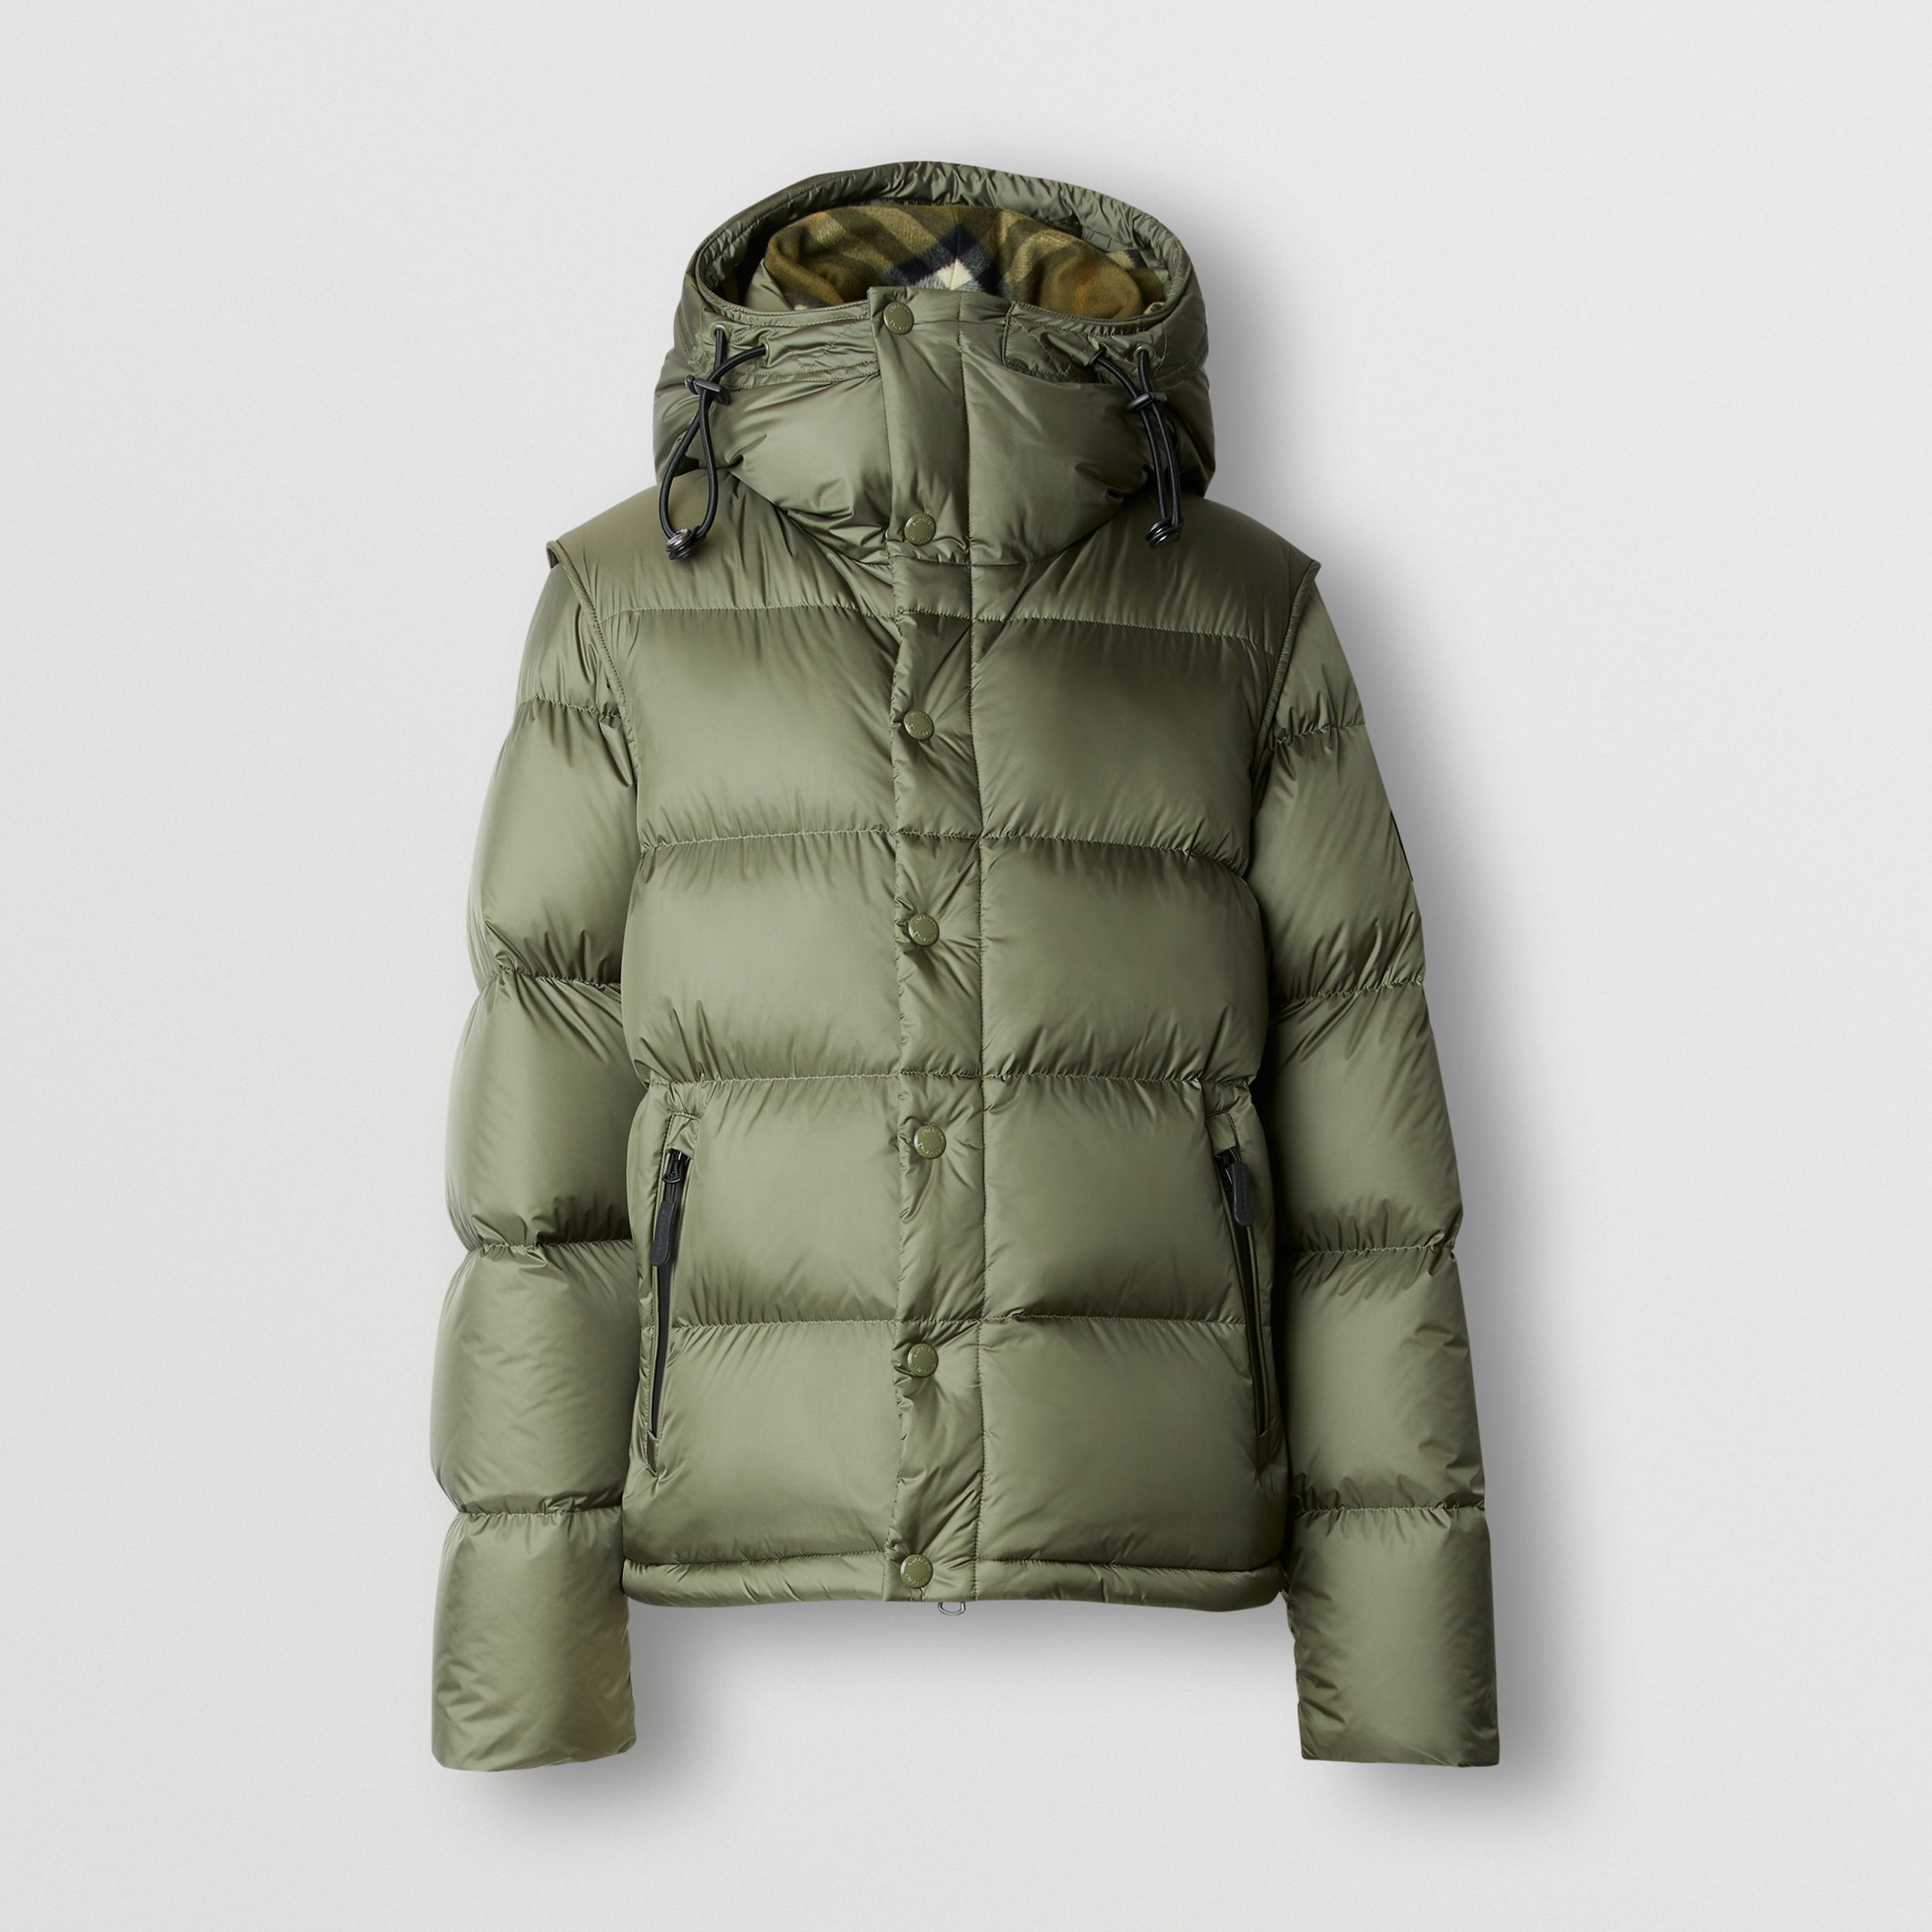 Detachable Sleeve Hooded Puffer Jacket in Olive - Men | Burberry - 4